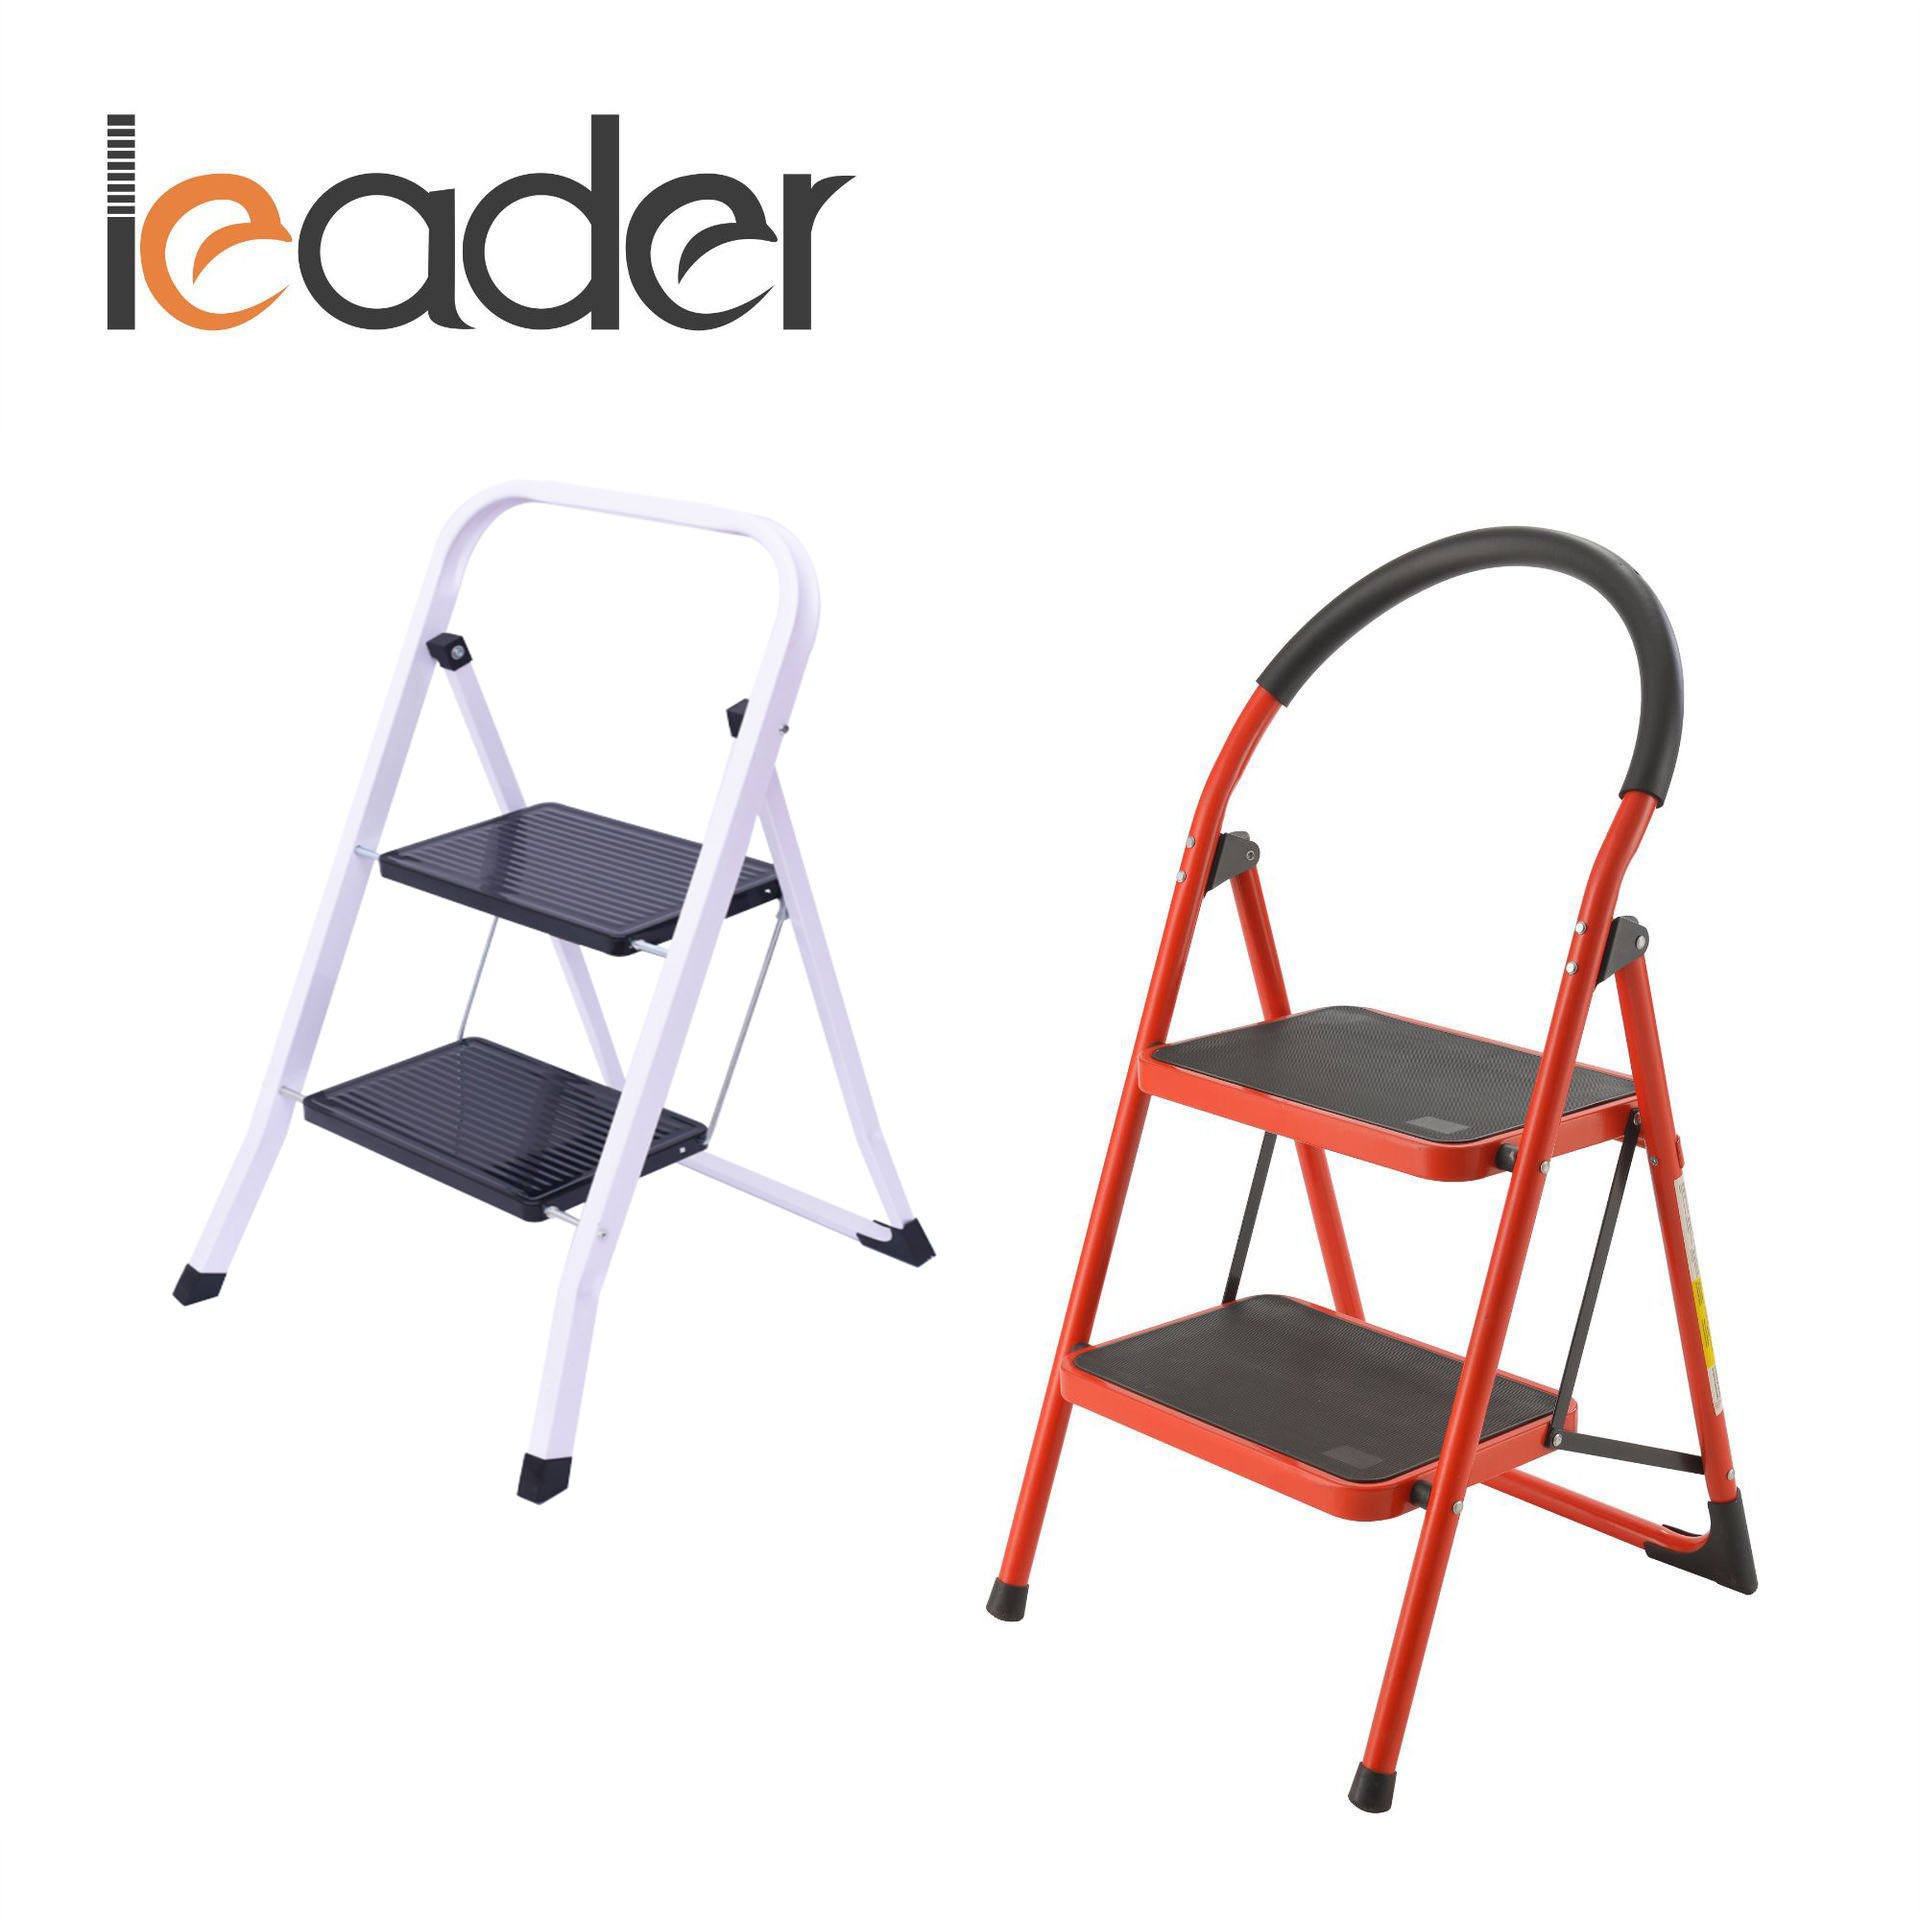 Two steps square tube folding iron ladder